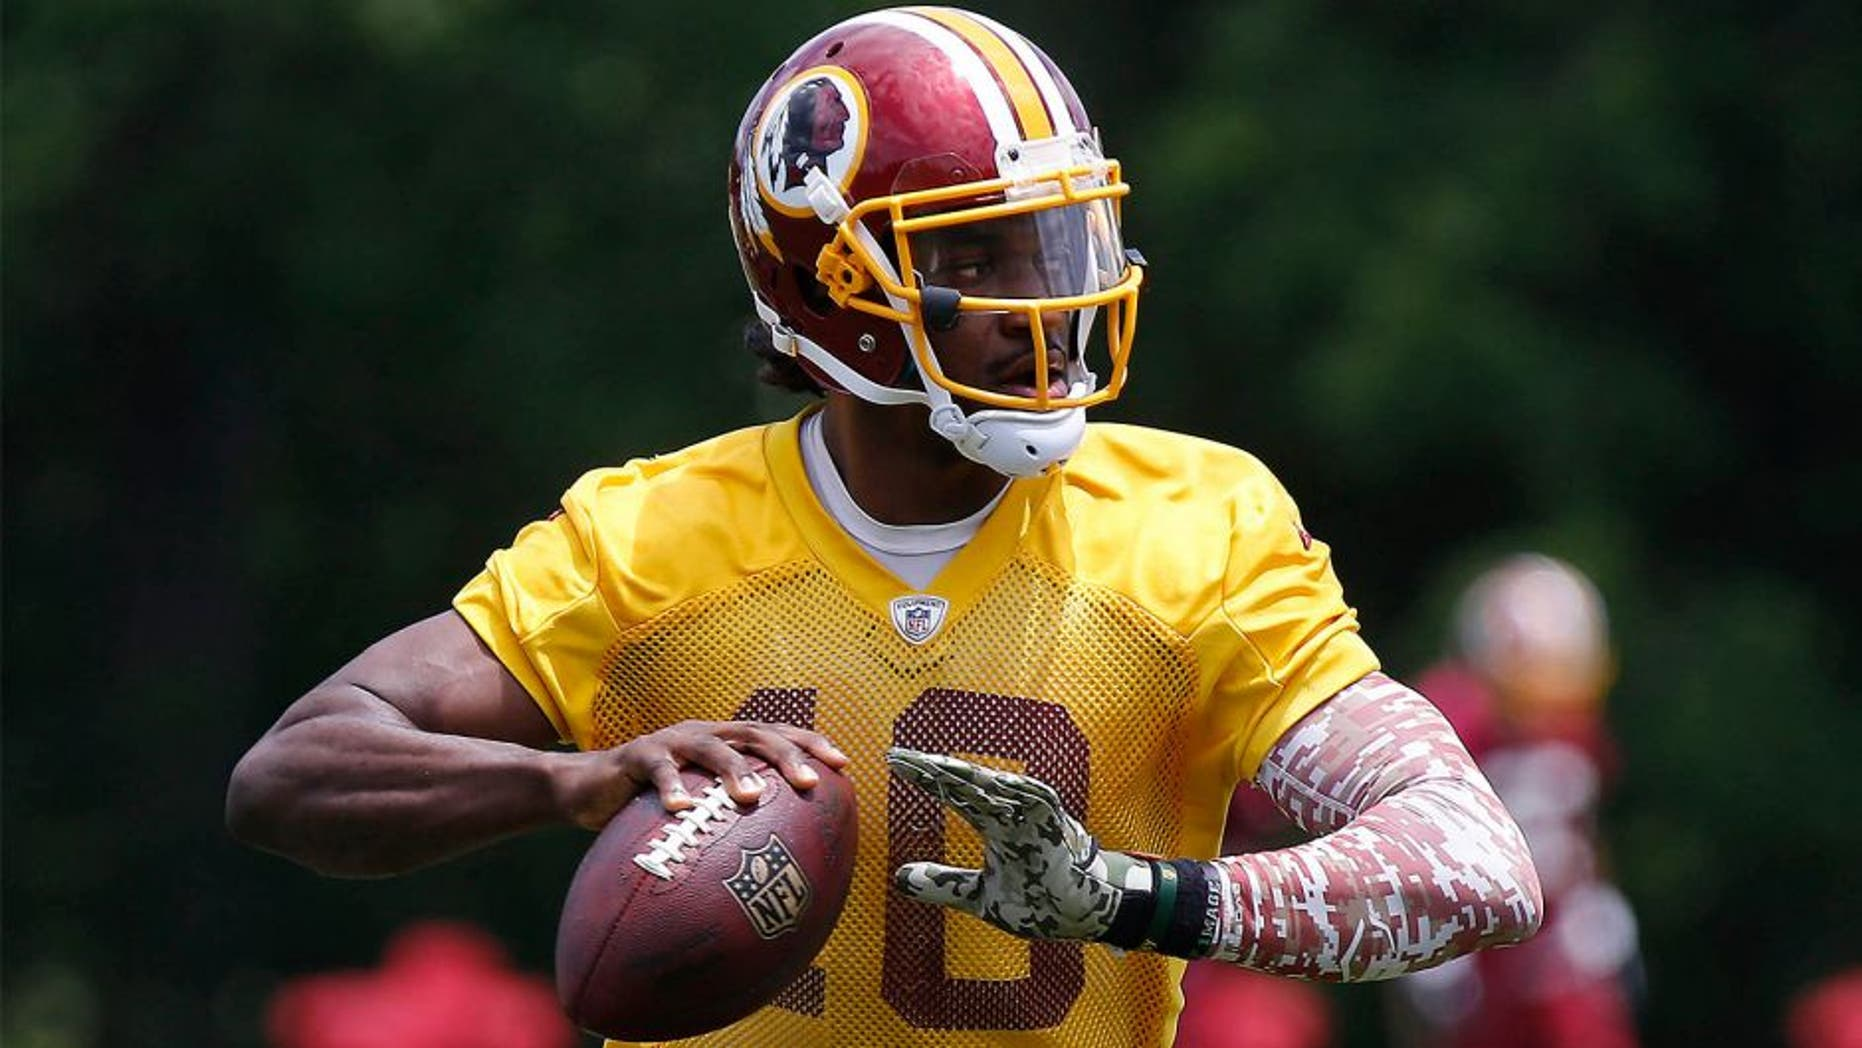 Jun 16, 2015; Ashburn, VA, USA; Washington Redskins quarterback Robert Griffin III (10) prepares to throw the ball during drills as part of day one of Redskins Minicamp at Redskins Park. Mandatory Credit: Geoff Burke-USA TODAY Sports